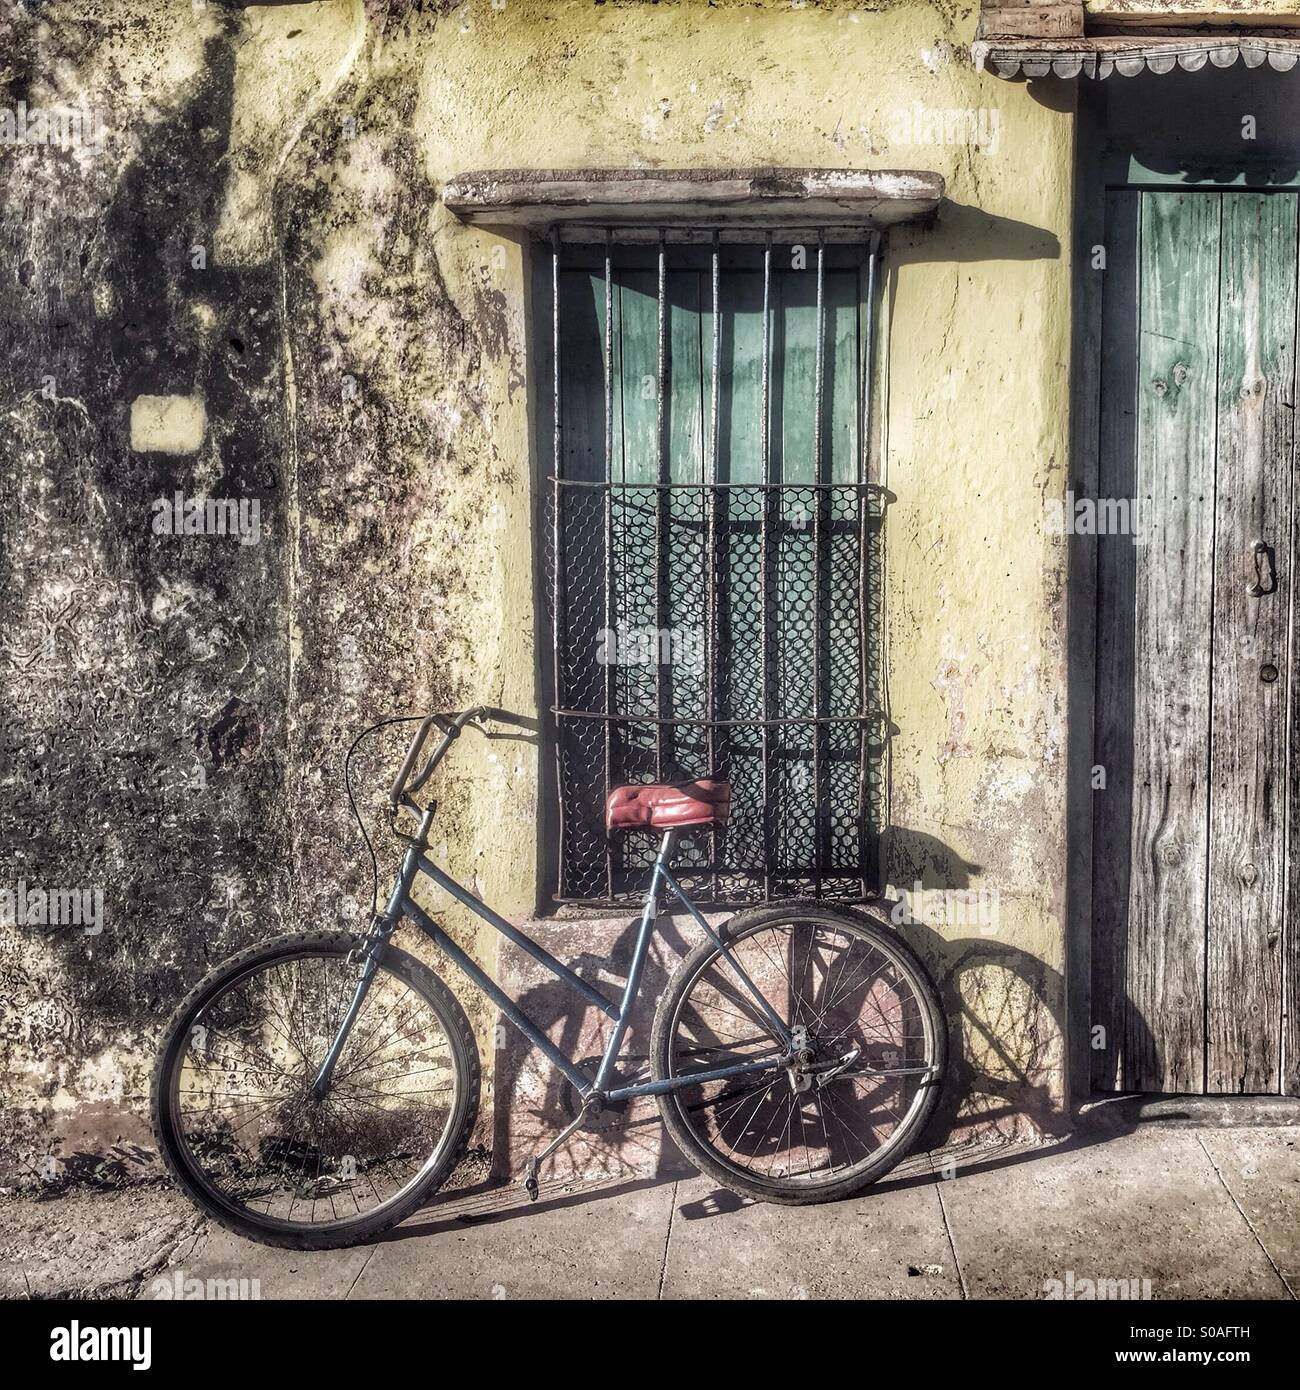 Bicycle against a dirty sunlit wall Trinidad Cuba. - Stock Image